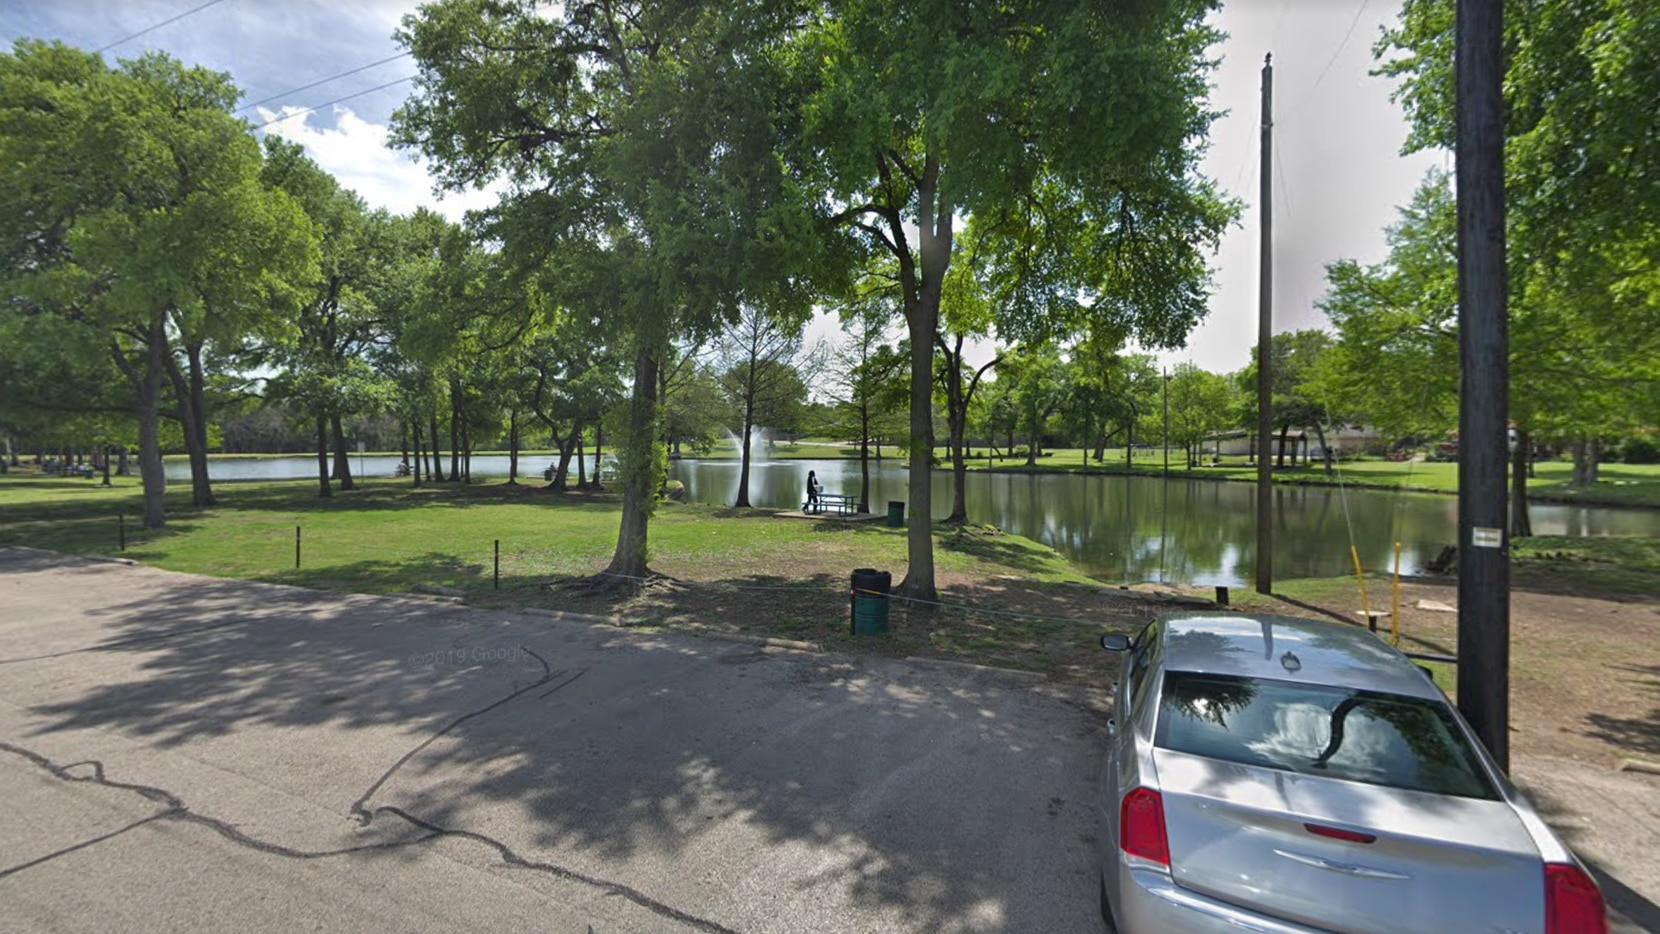 Authorities were called to Lakeside Park on Tuesday afternoon.